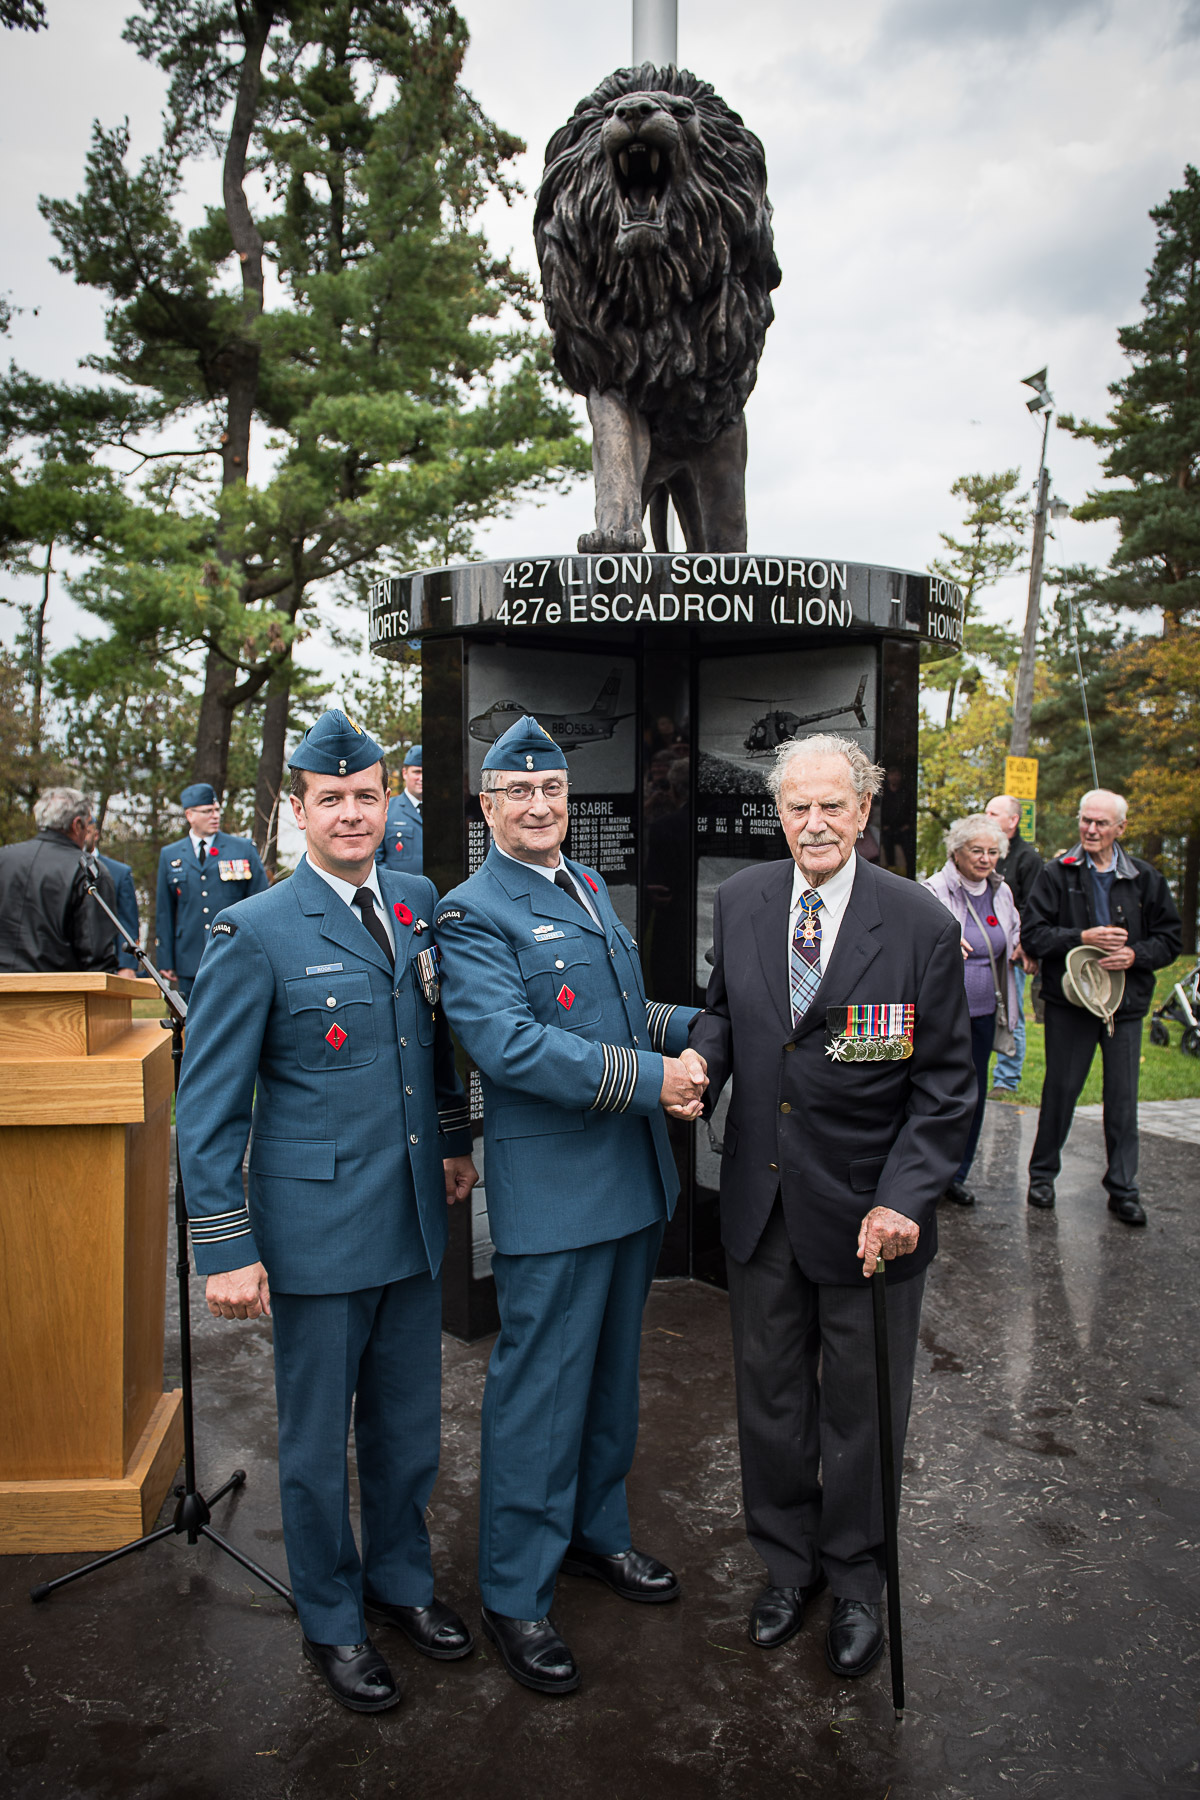 Largely championed by the Royal Canadian Air Force Association Trust and 427 SOAS Honorary Col Delbert Lippert, the cenotaph is a milestone in the Squadron's history, being the first dedication of its kind to honor the sacrifices and storied past of 427 Squadron. National Defence/Canadian Armed Forces Photo